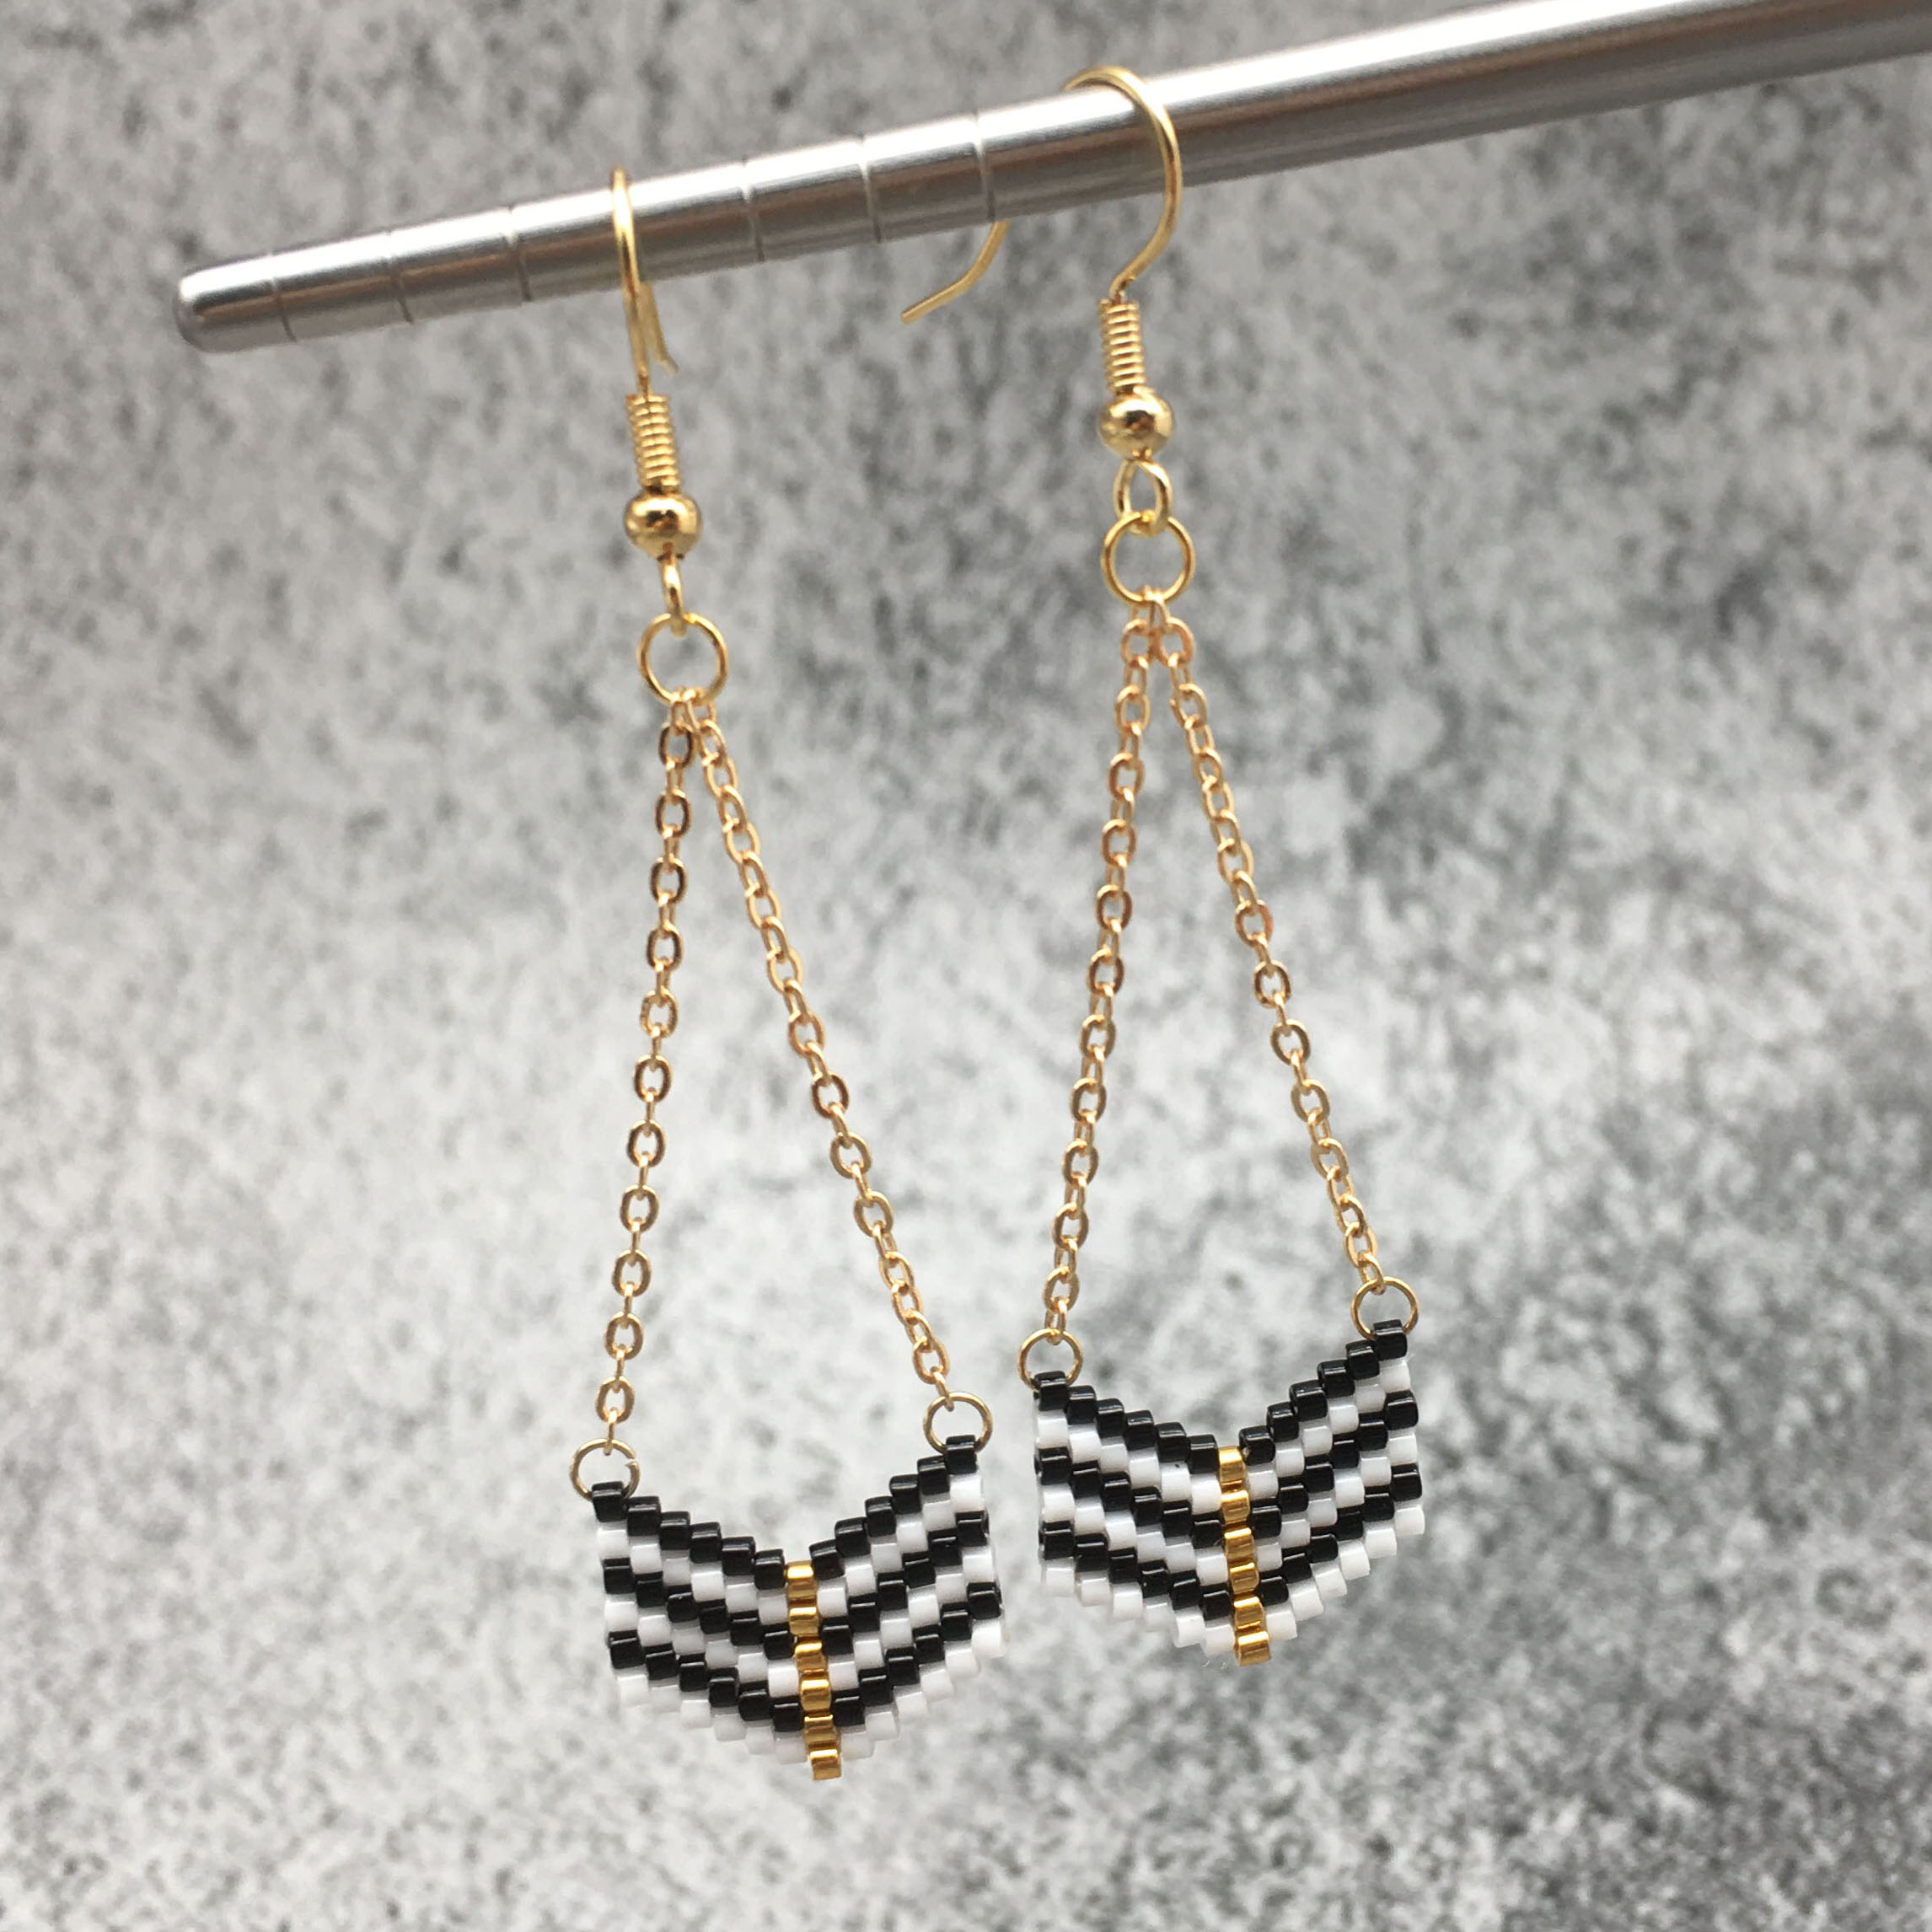 OMY <font><b>6</b></font> designs Women's fashion beads earrings for women earring BEADED Drop EARINGS Women Gift <font><b>bts</b></font> oorbellen 2019 image